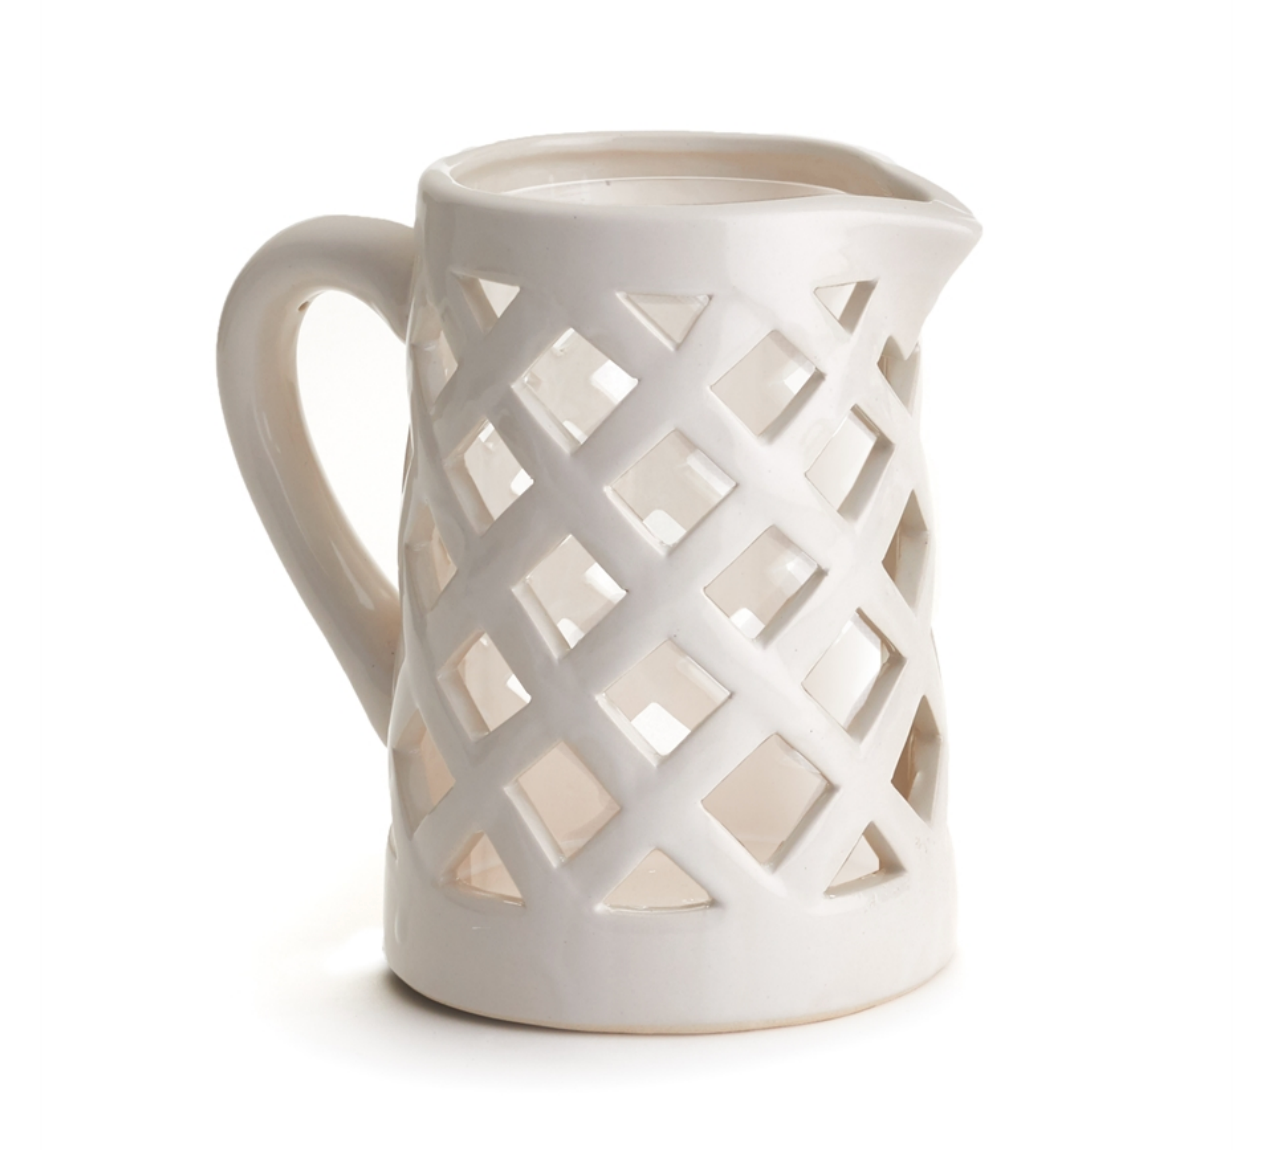 Lattice Pitcher - Amy Berry Home